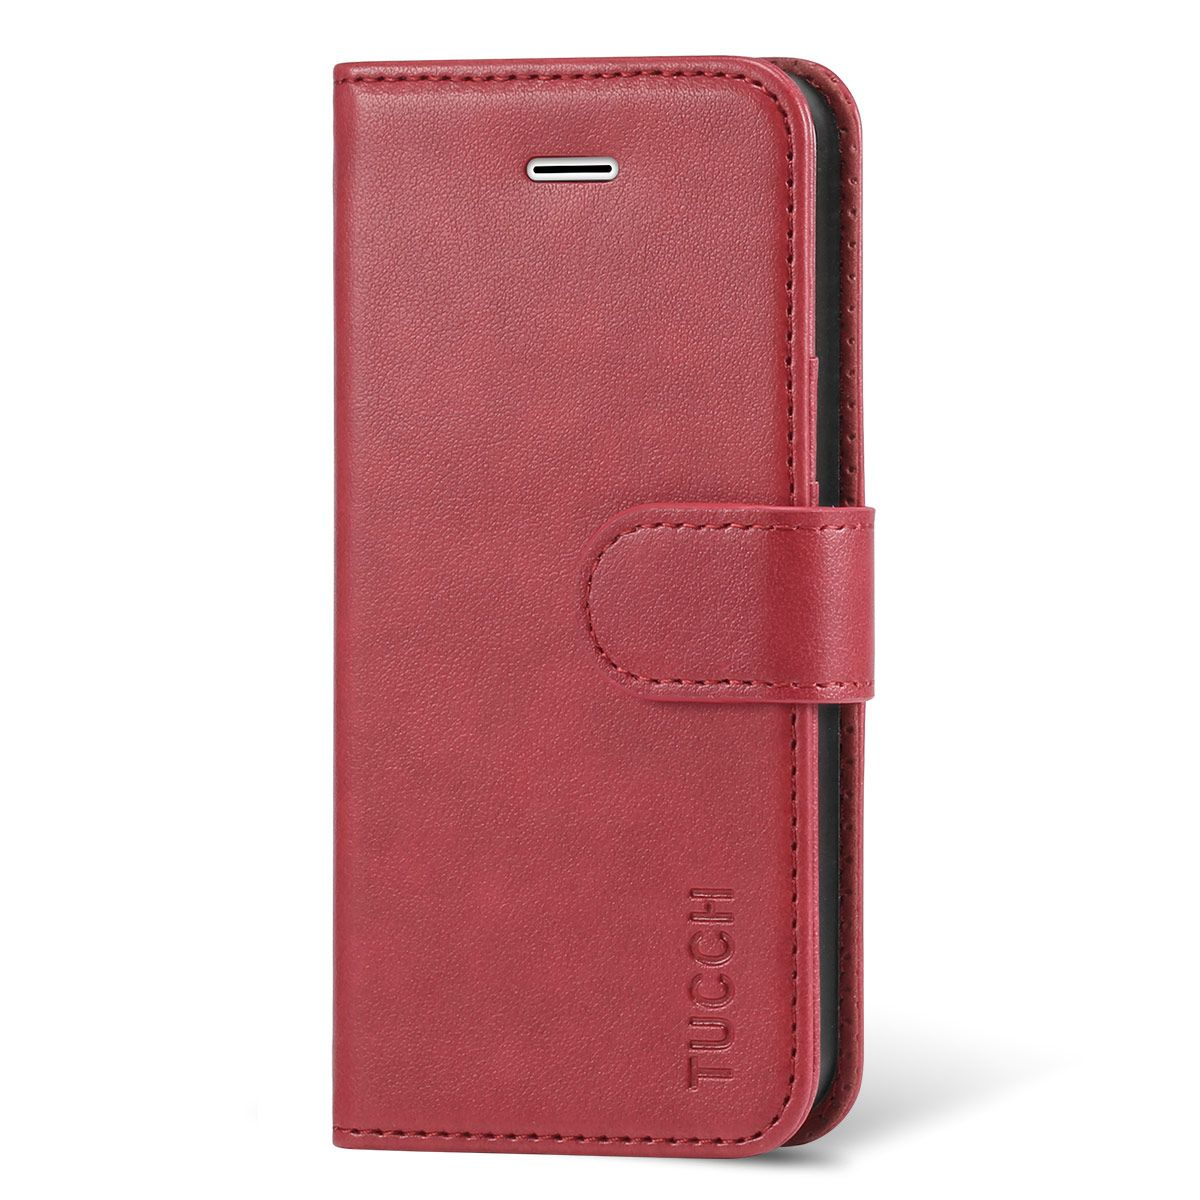 free shipping 6e687 1e3c3 TUCCH Flip Leather Wallet Case, Magnetic Closure for iPhone SE/5S/5